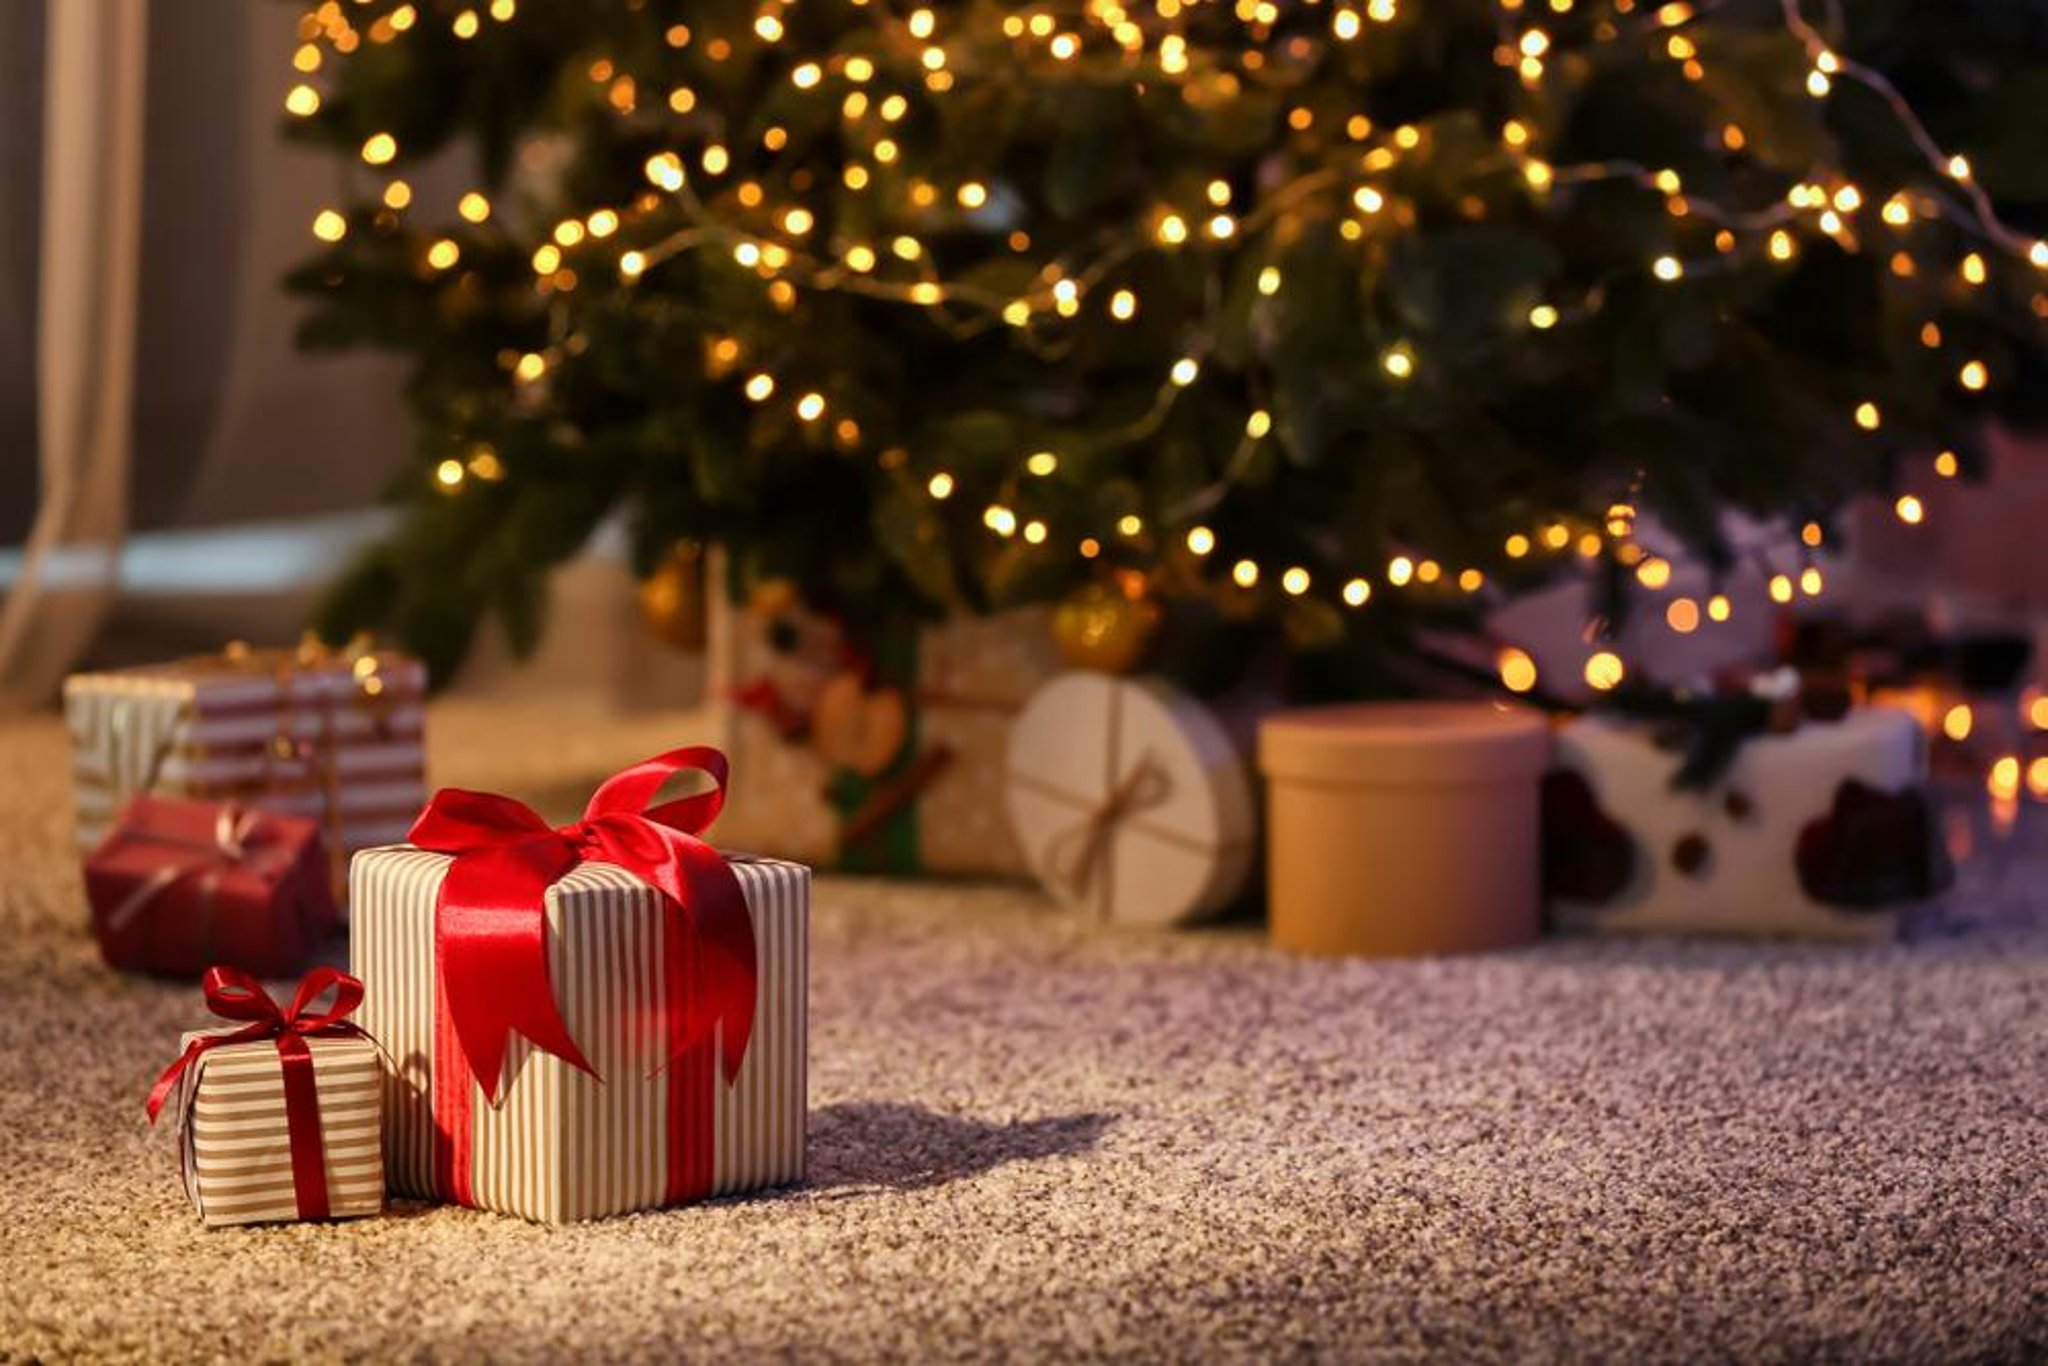 10 cheap or free homemade Christmas gift ideas that won't burn a hole in your wallet